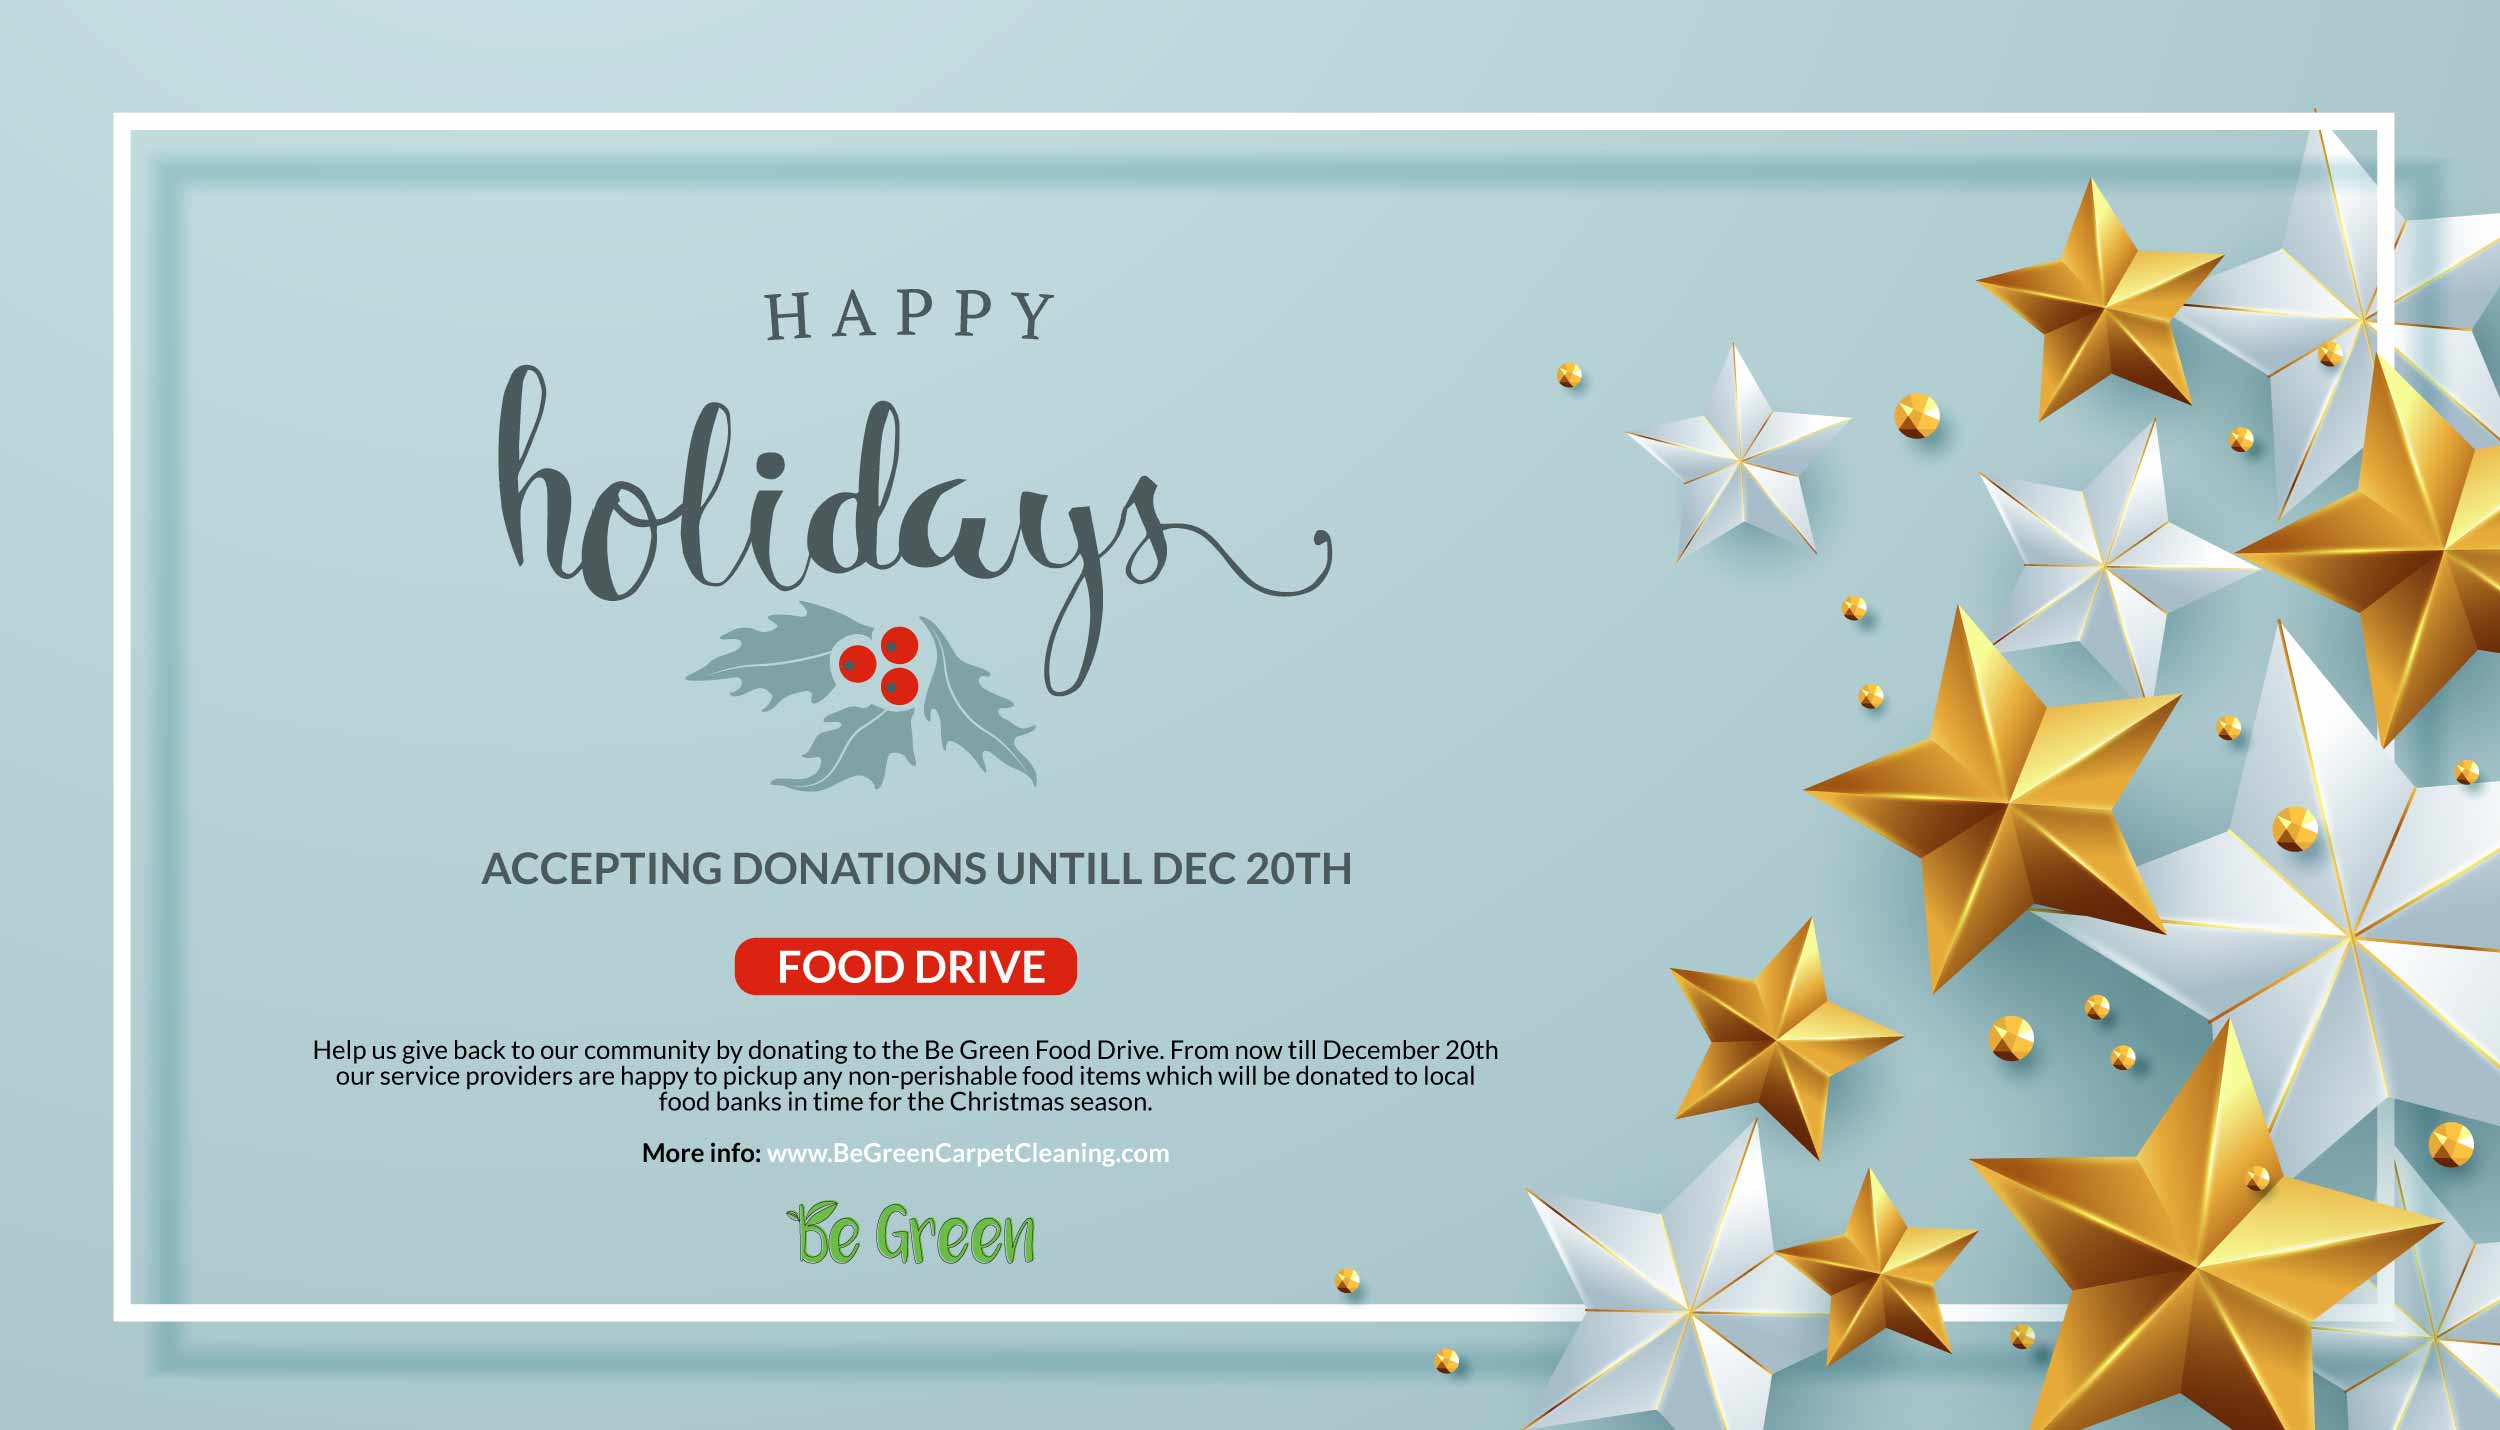 Be Green Holiday Food Drive